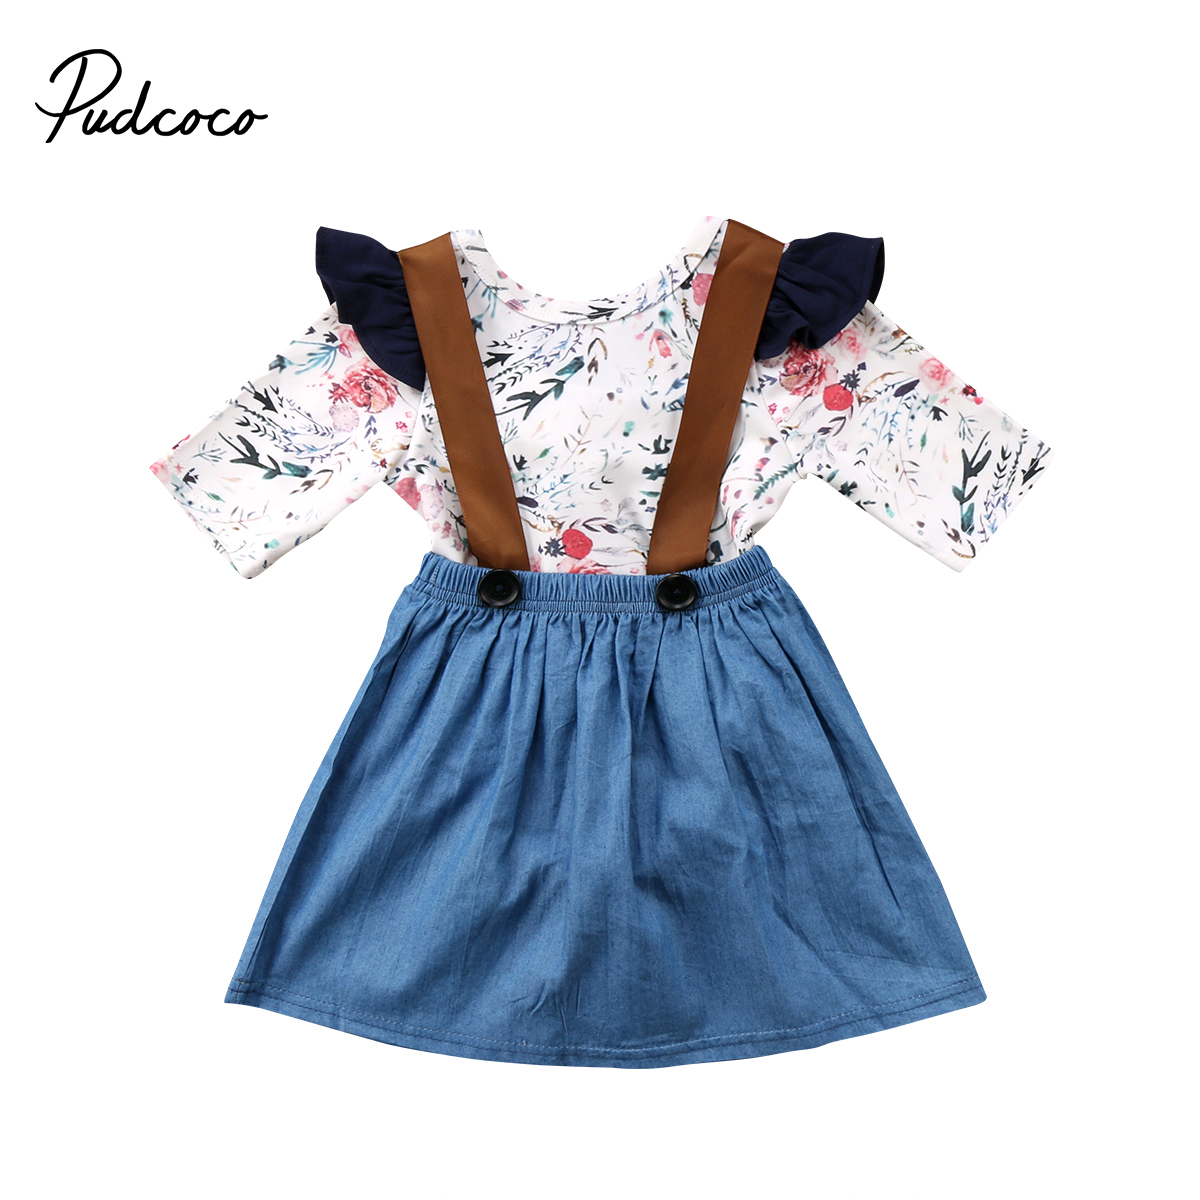 2pcs Kids Baby Girls Flying Sleeve Floral Rompe Tops+Suspender Dress Overalls Outfits Autumn Toddler Clothing 1-6T